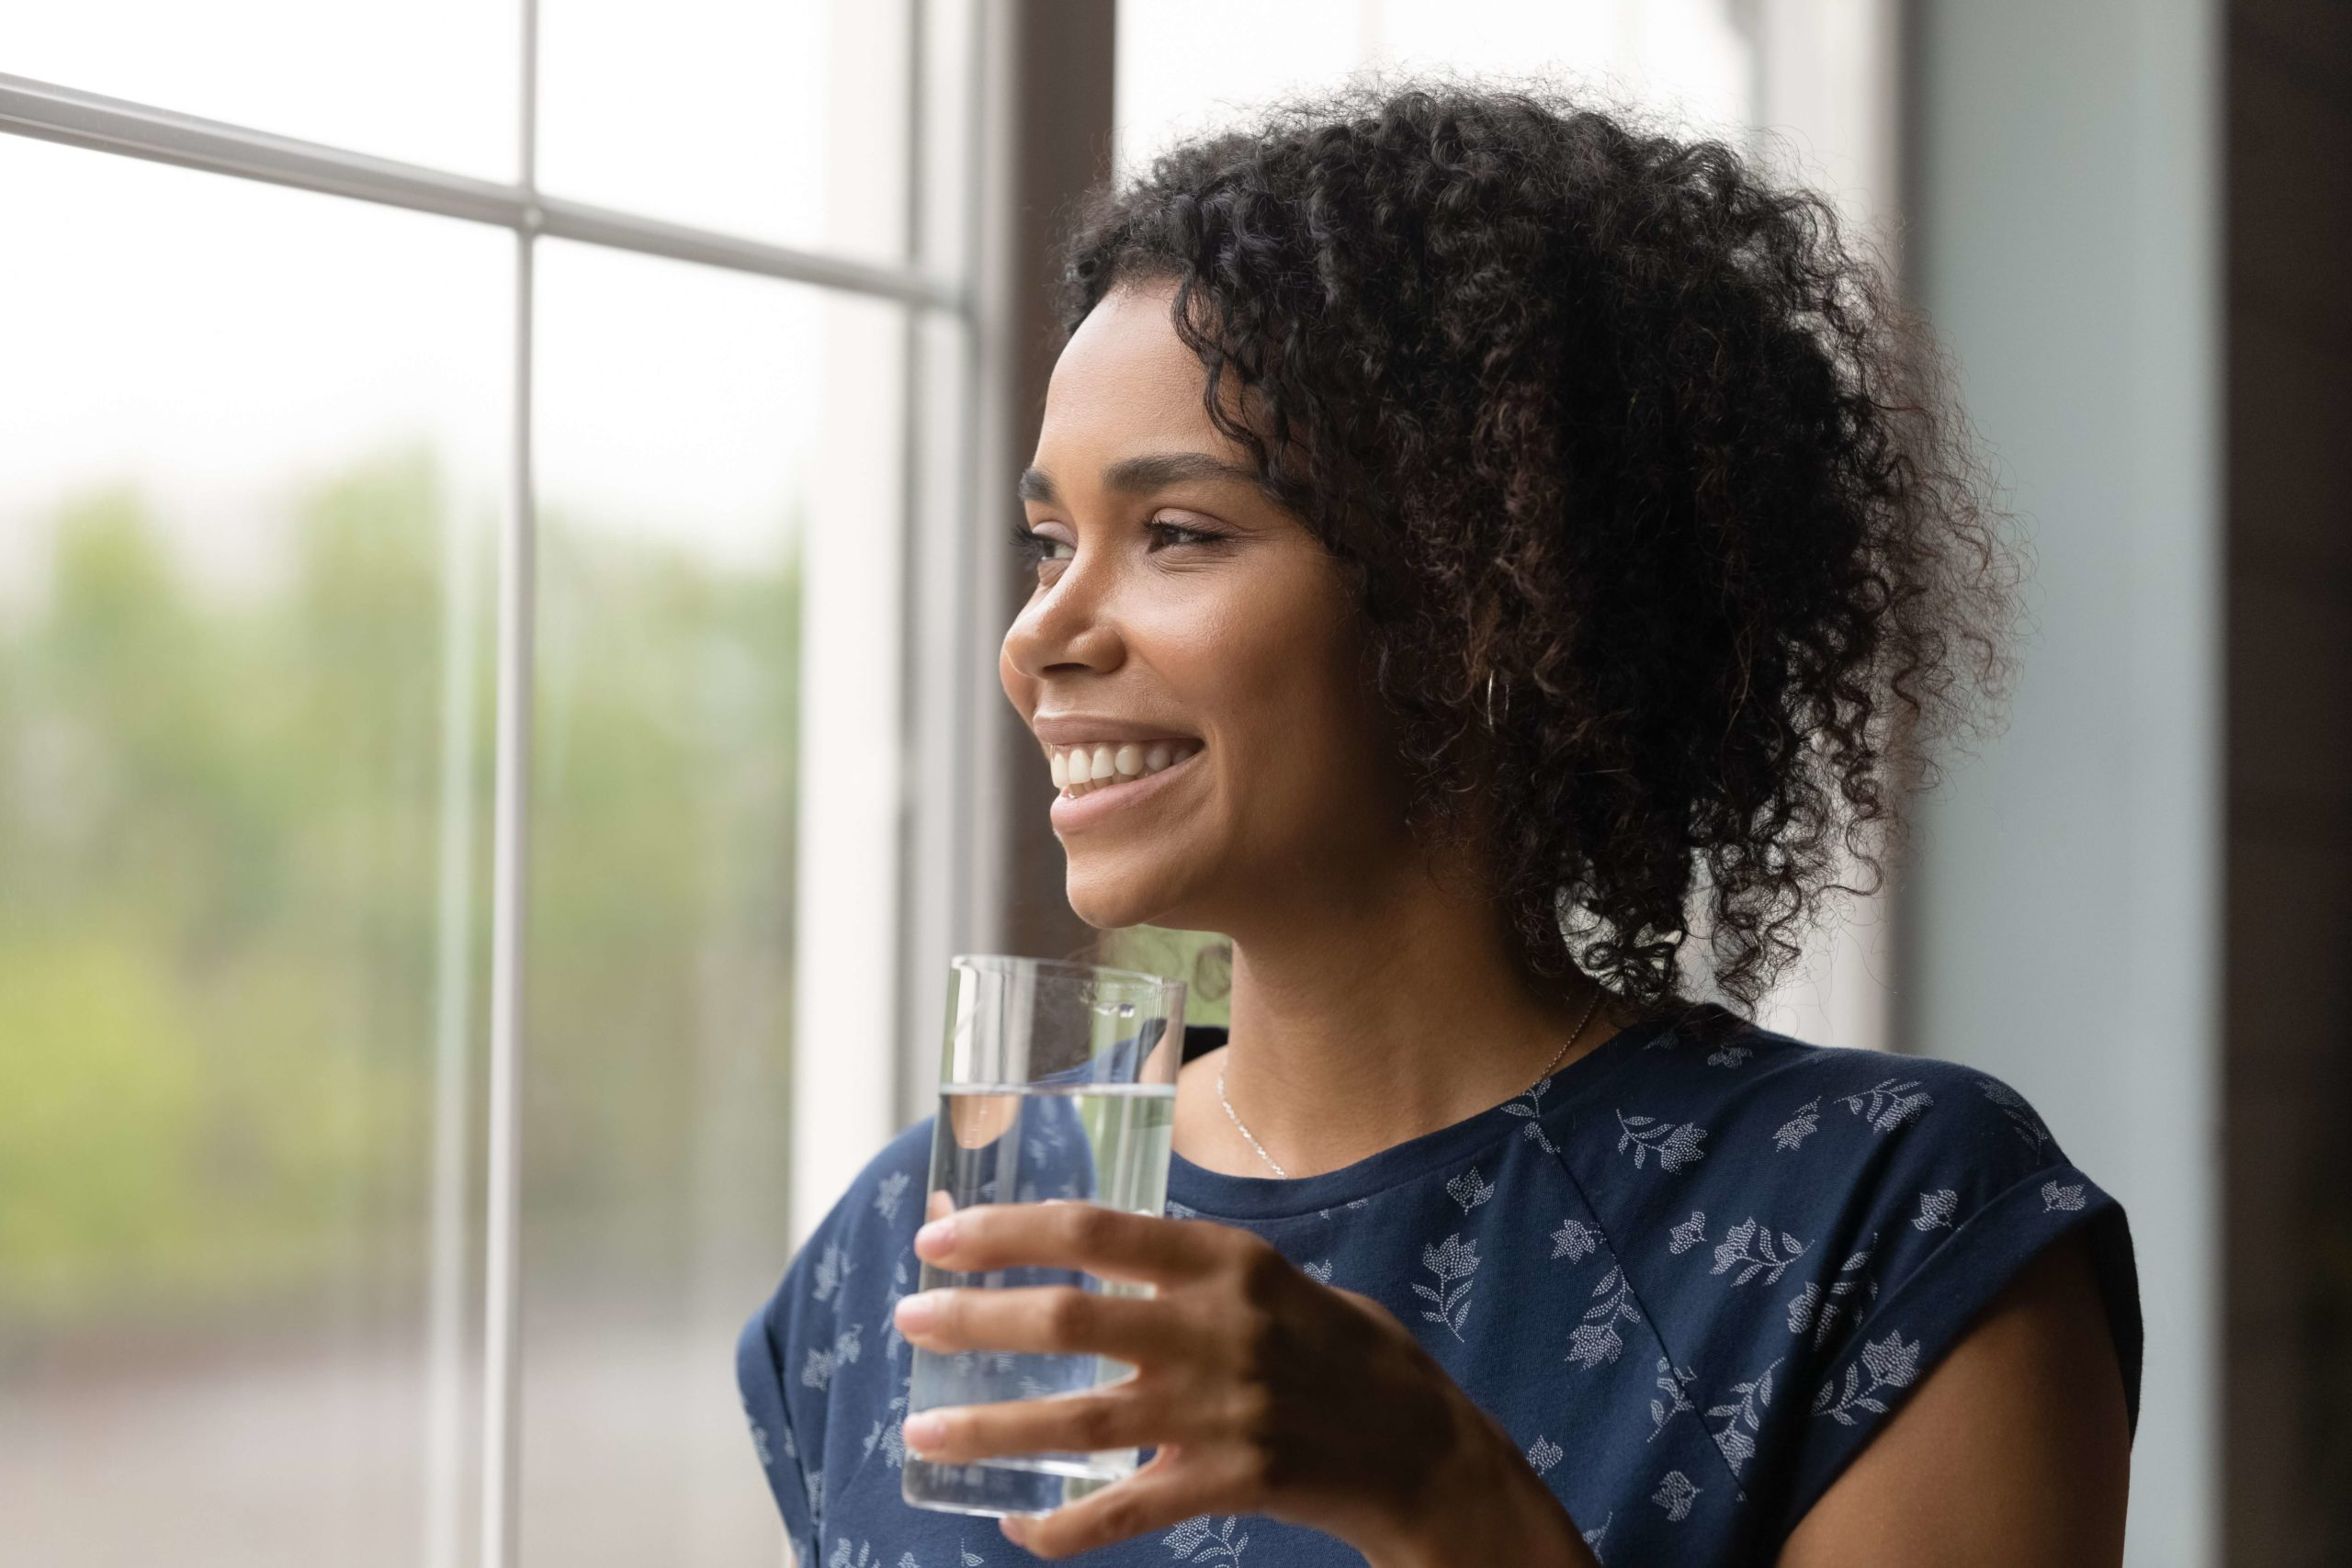 woman drinking water and looking out the window